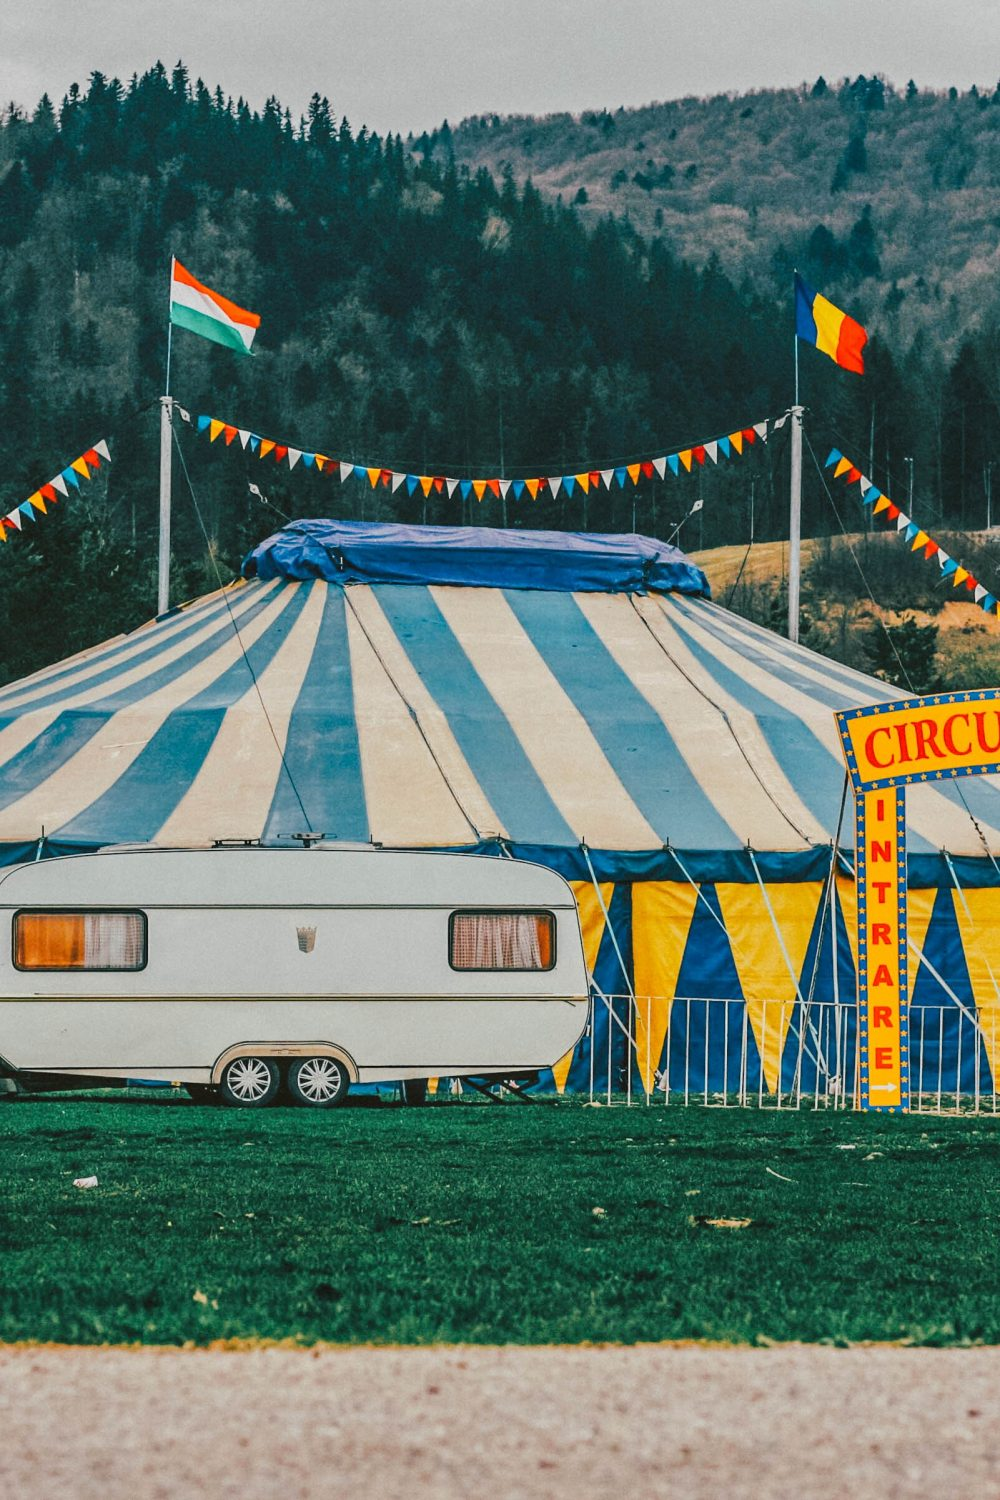 A circus tent on a field on a blog post talking about The Greatest Showman